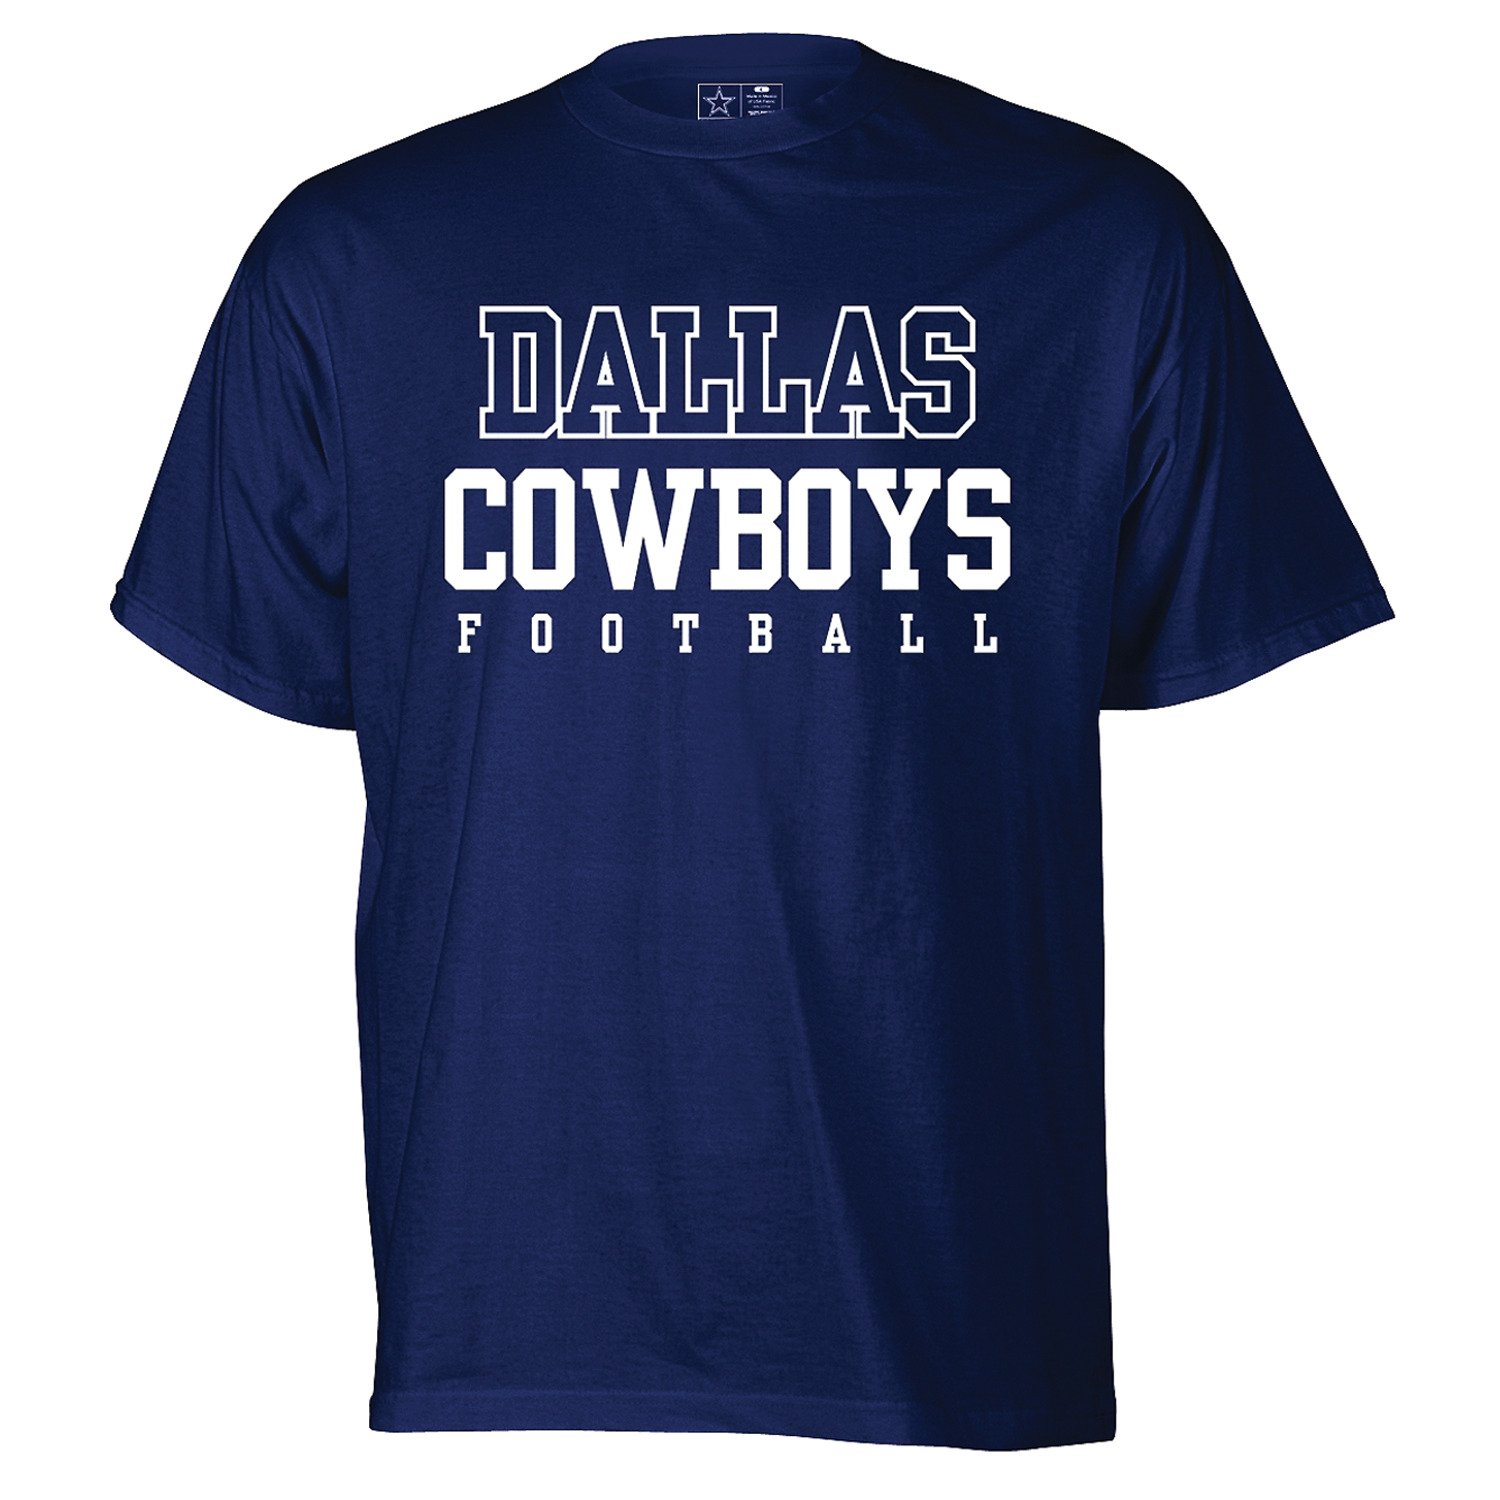 466b08feb Display product reviews for Dallas Cowboys Men s Practice T-shirt This  product is currently selected